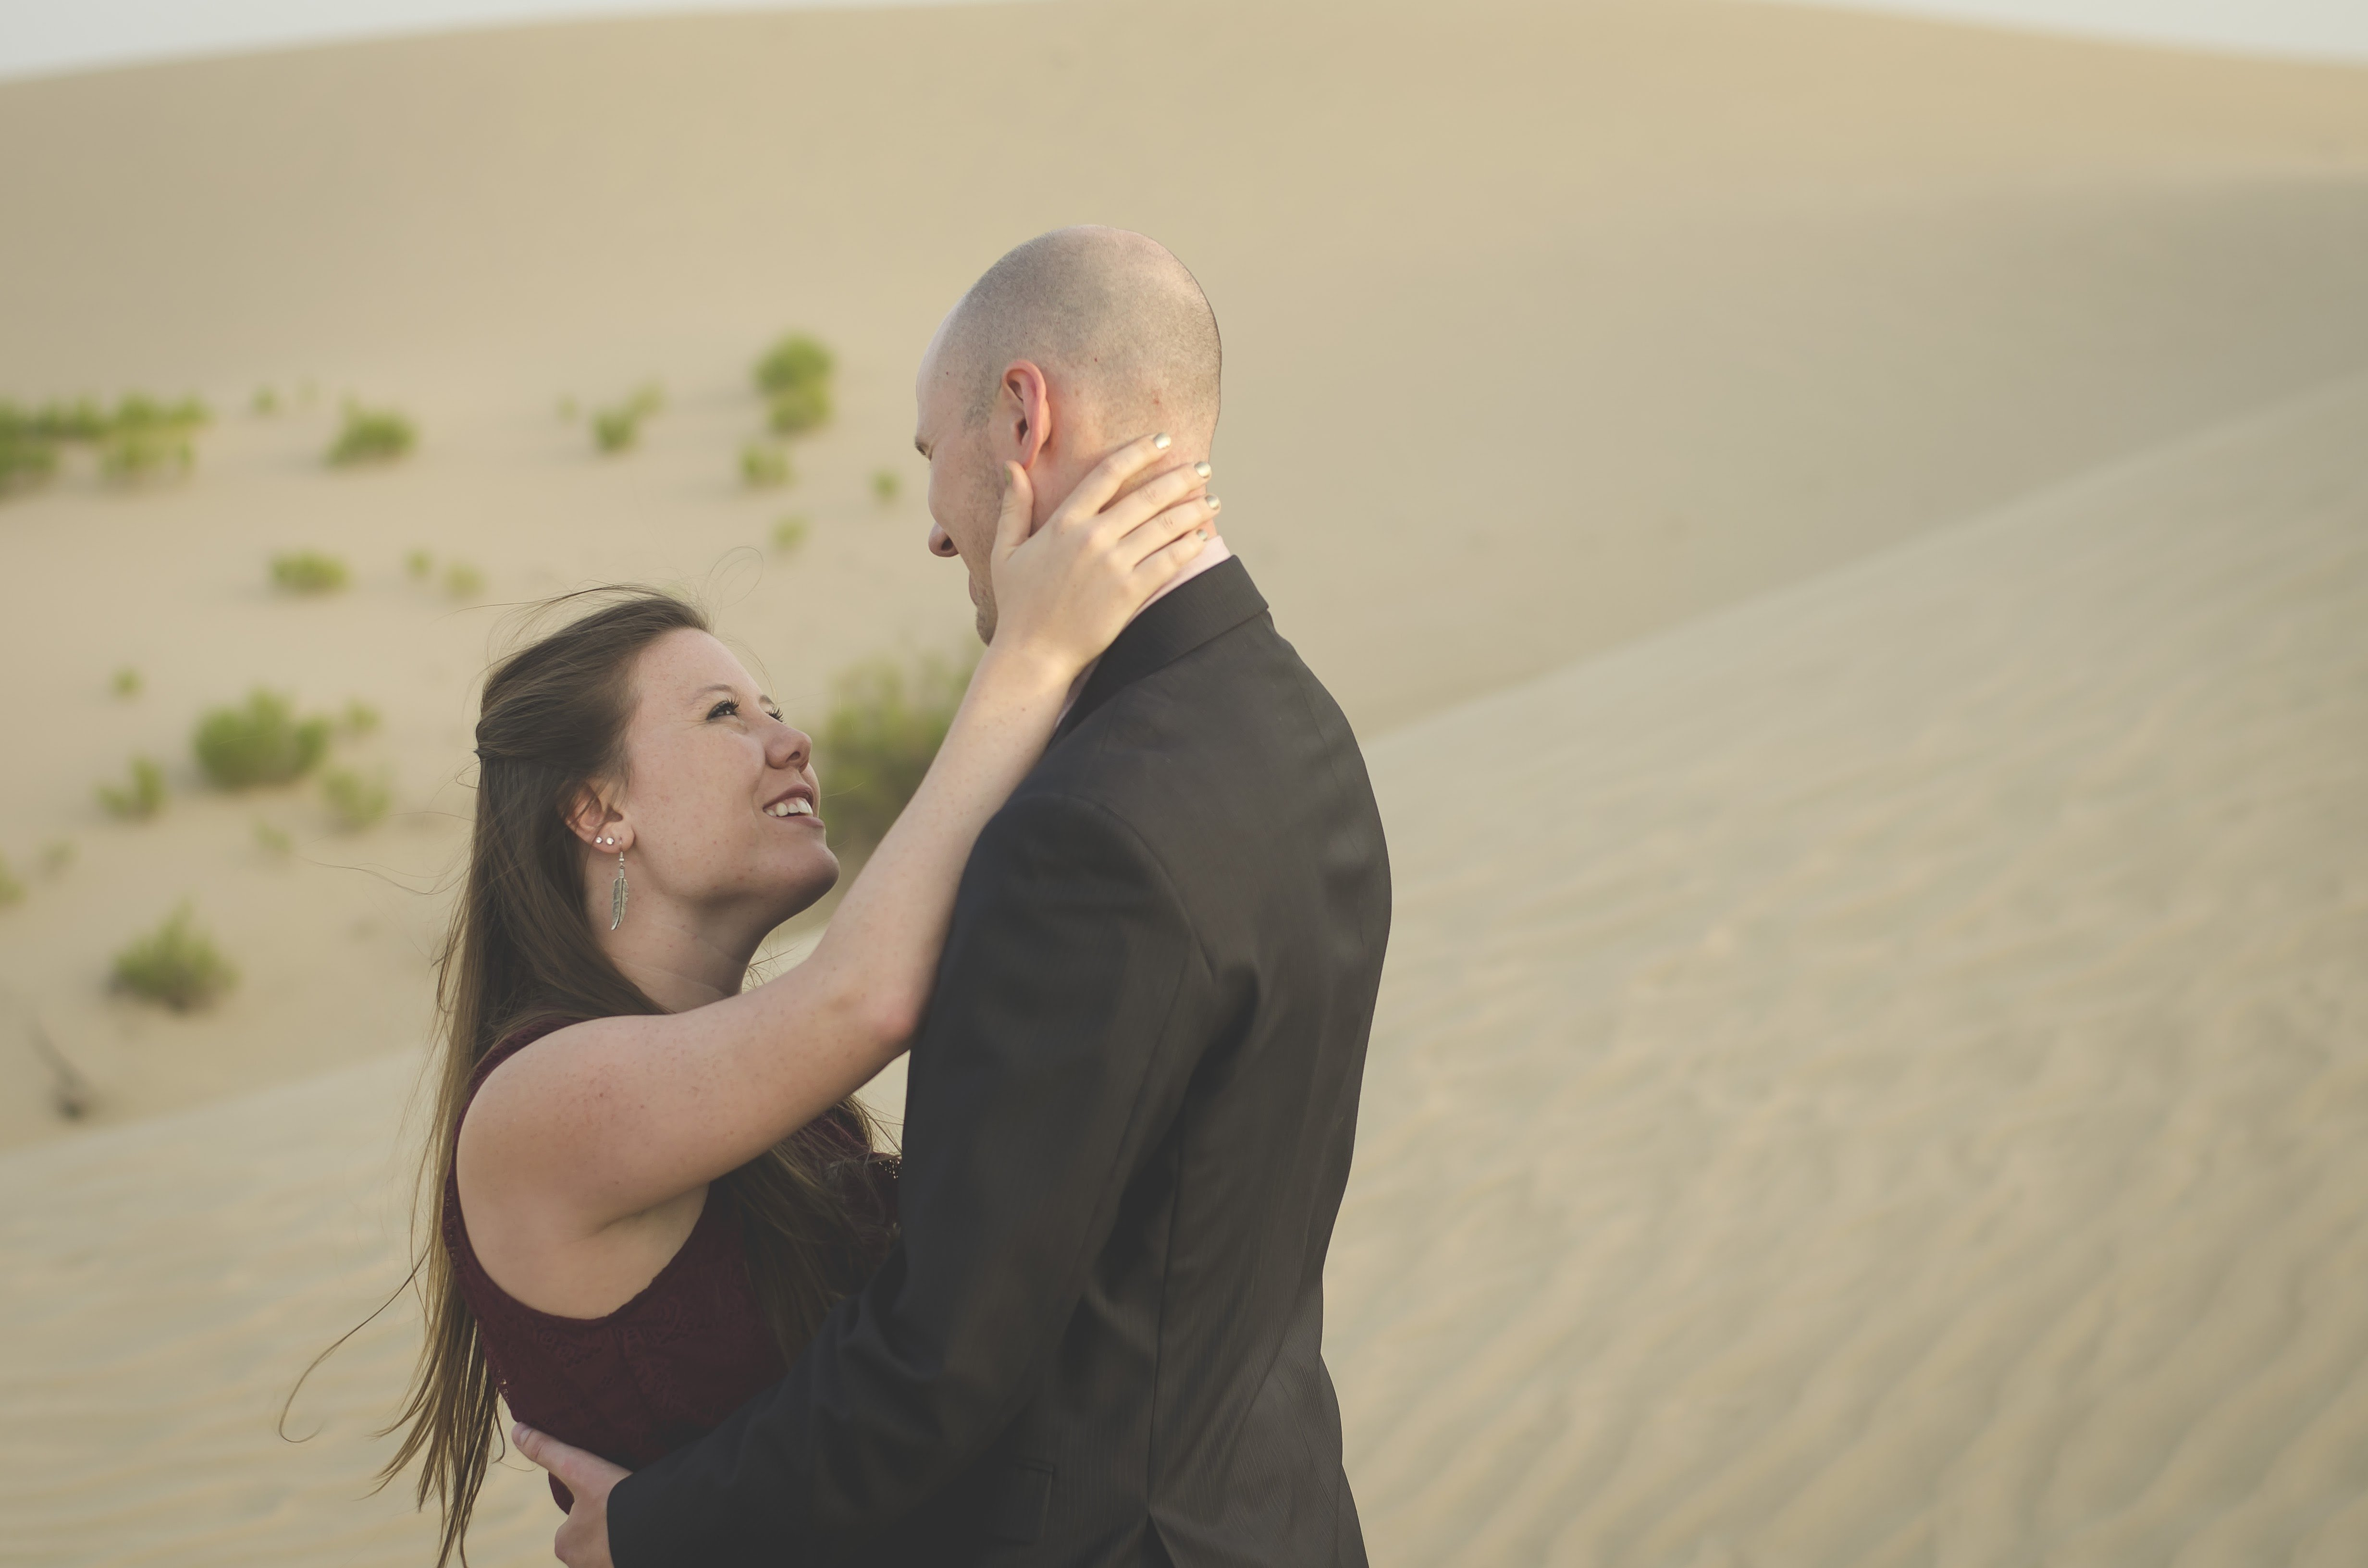 couple embracing in a desert engagement photo